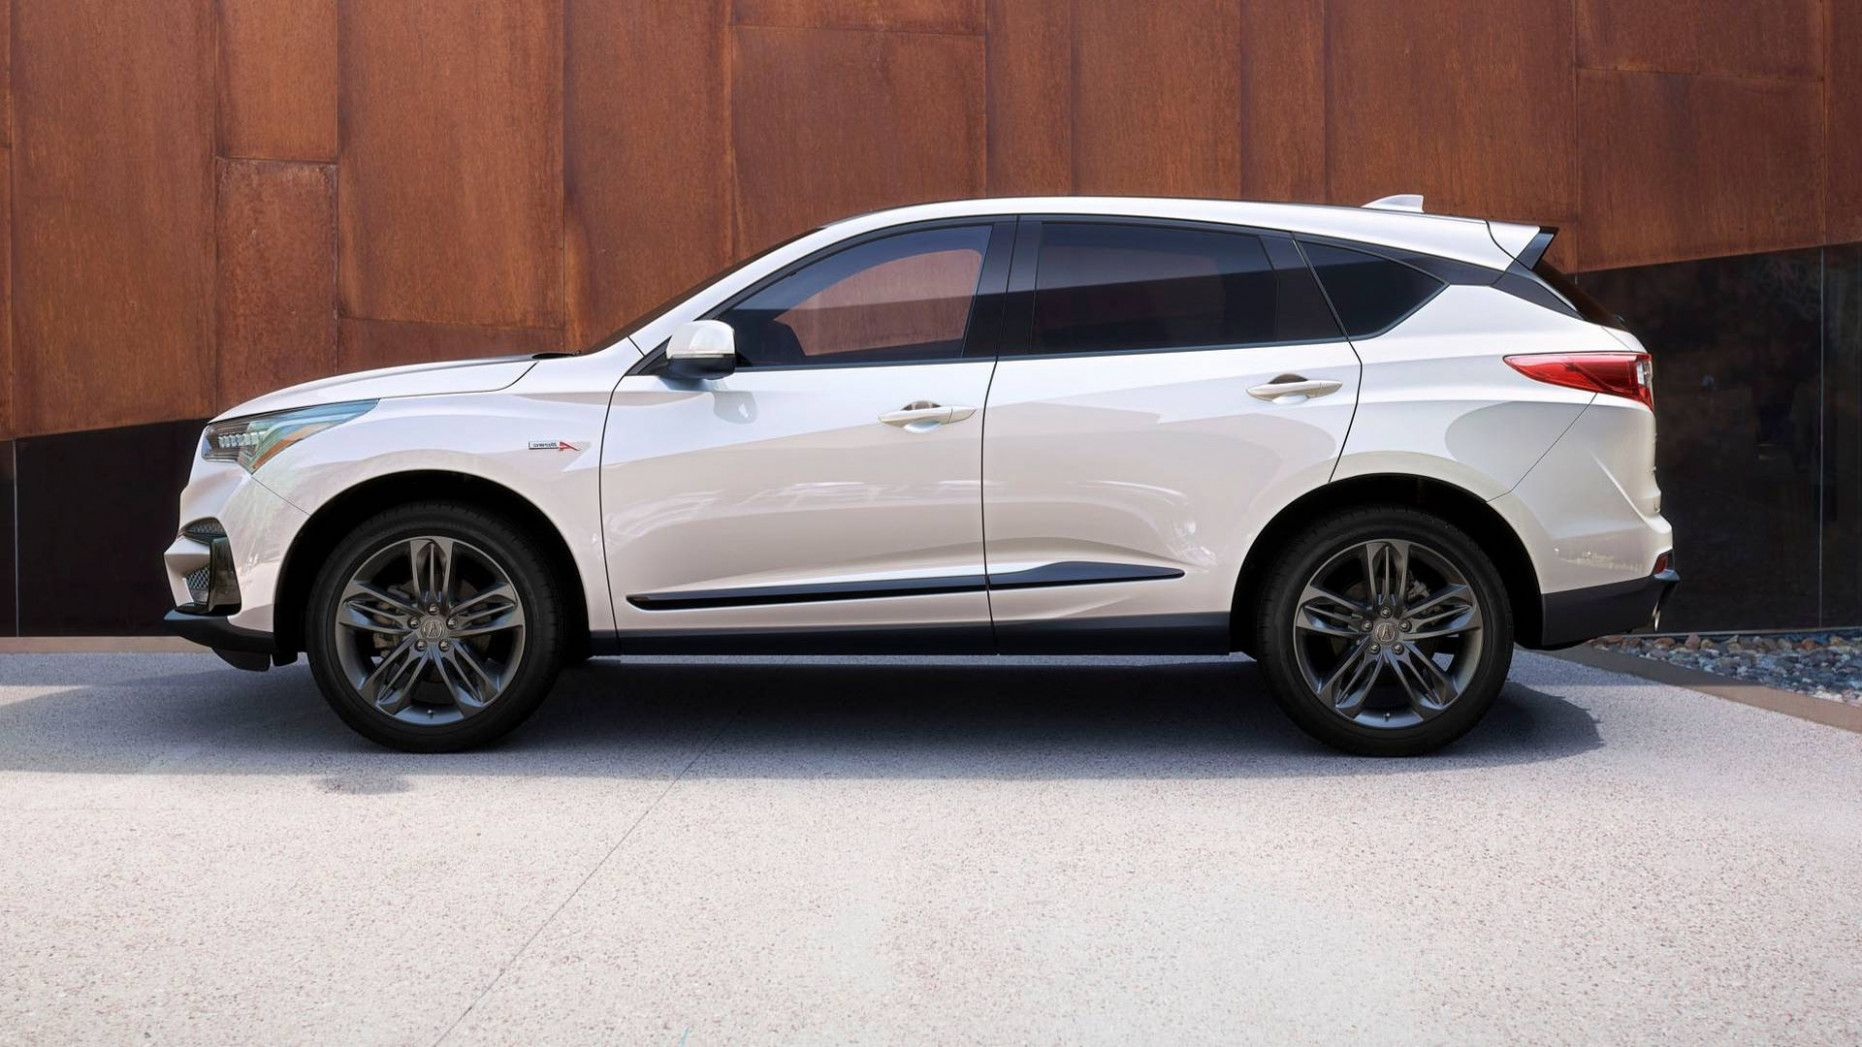 What Will Acura Exterior Colors 2020 Be Like In The Next 50 Years Acura Rdx Crossover Suv Concept Cars